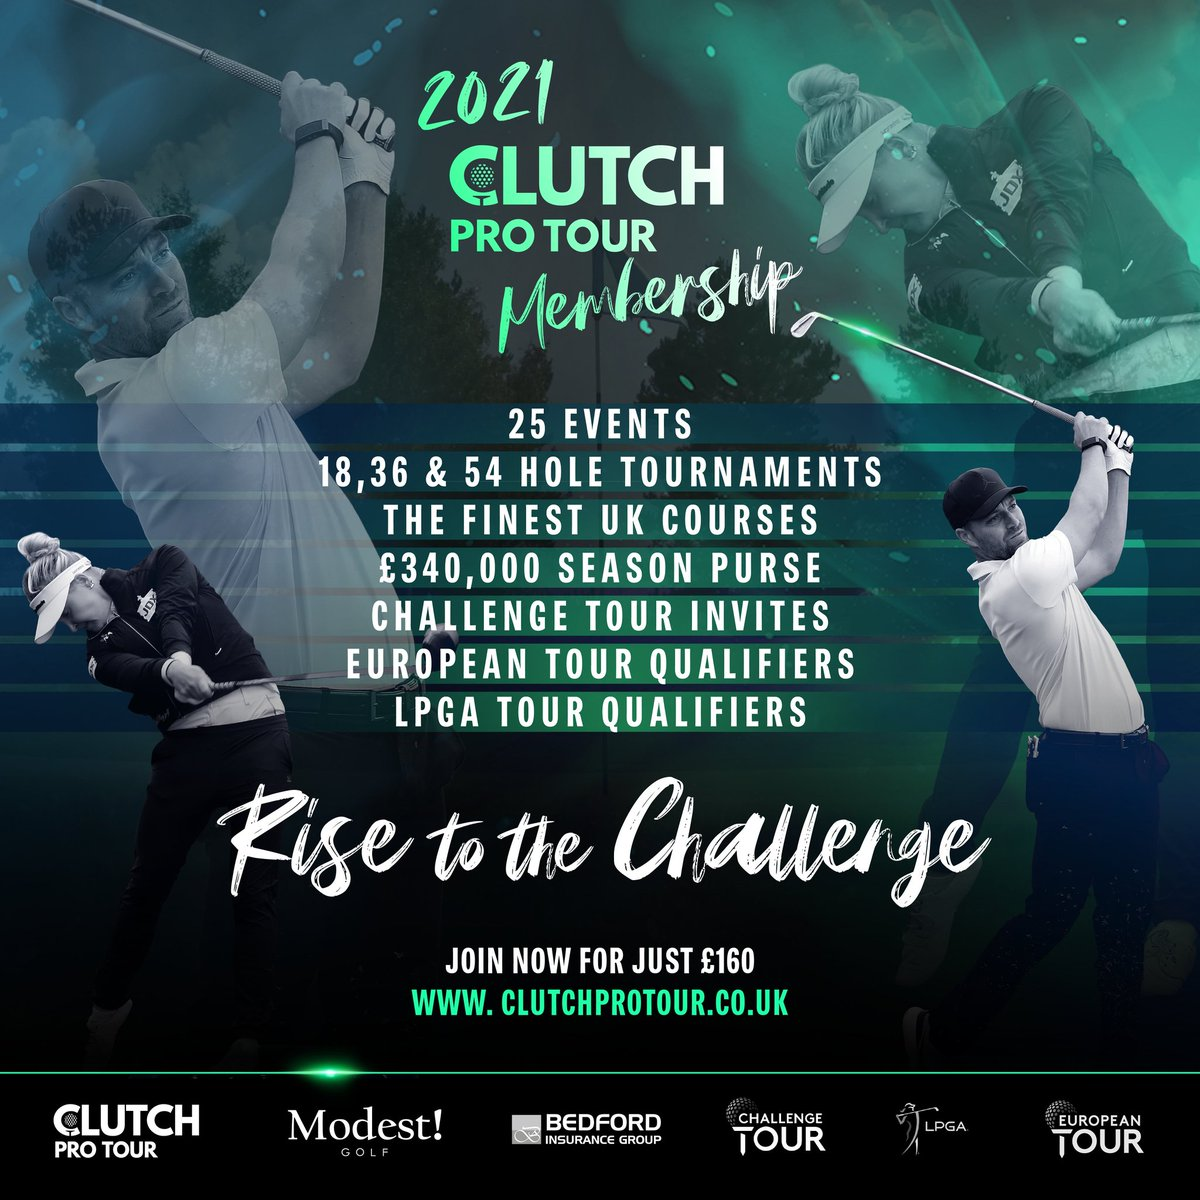 Dont miss the chance to sign up for the 2021 @clutchprotour membership 🖊️  MEMBERS RECIEVE PRIORITY BOOKING FOR ALL EVENTS 💯  The first few events @Princesgolfclub & @KnoleParkGC are open for entries today at 3pm ⛳  #clutchprotour #inclusivity #changeyourseason